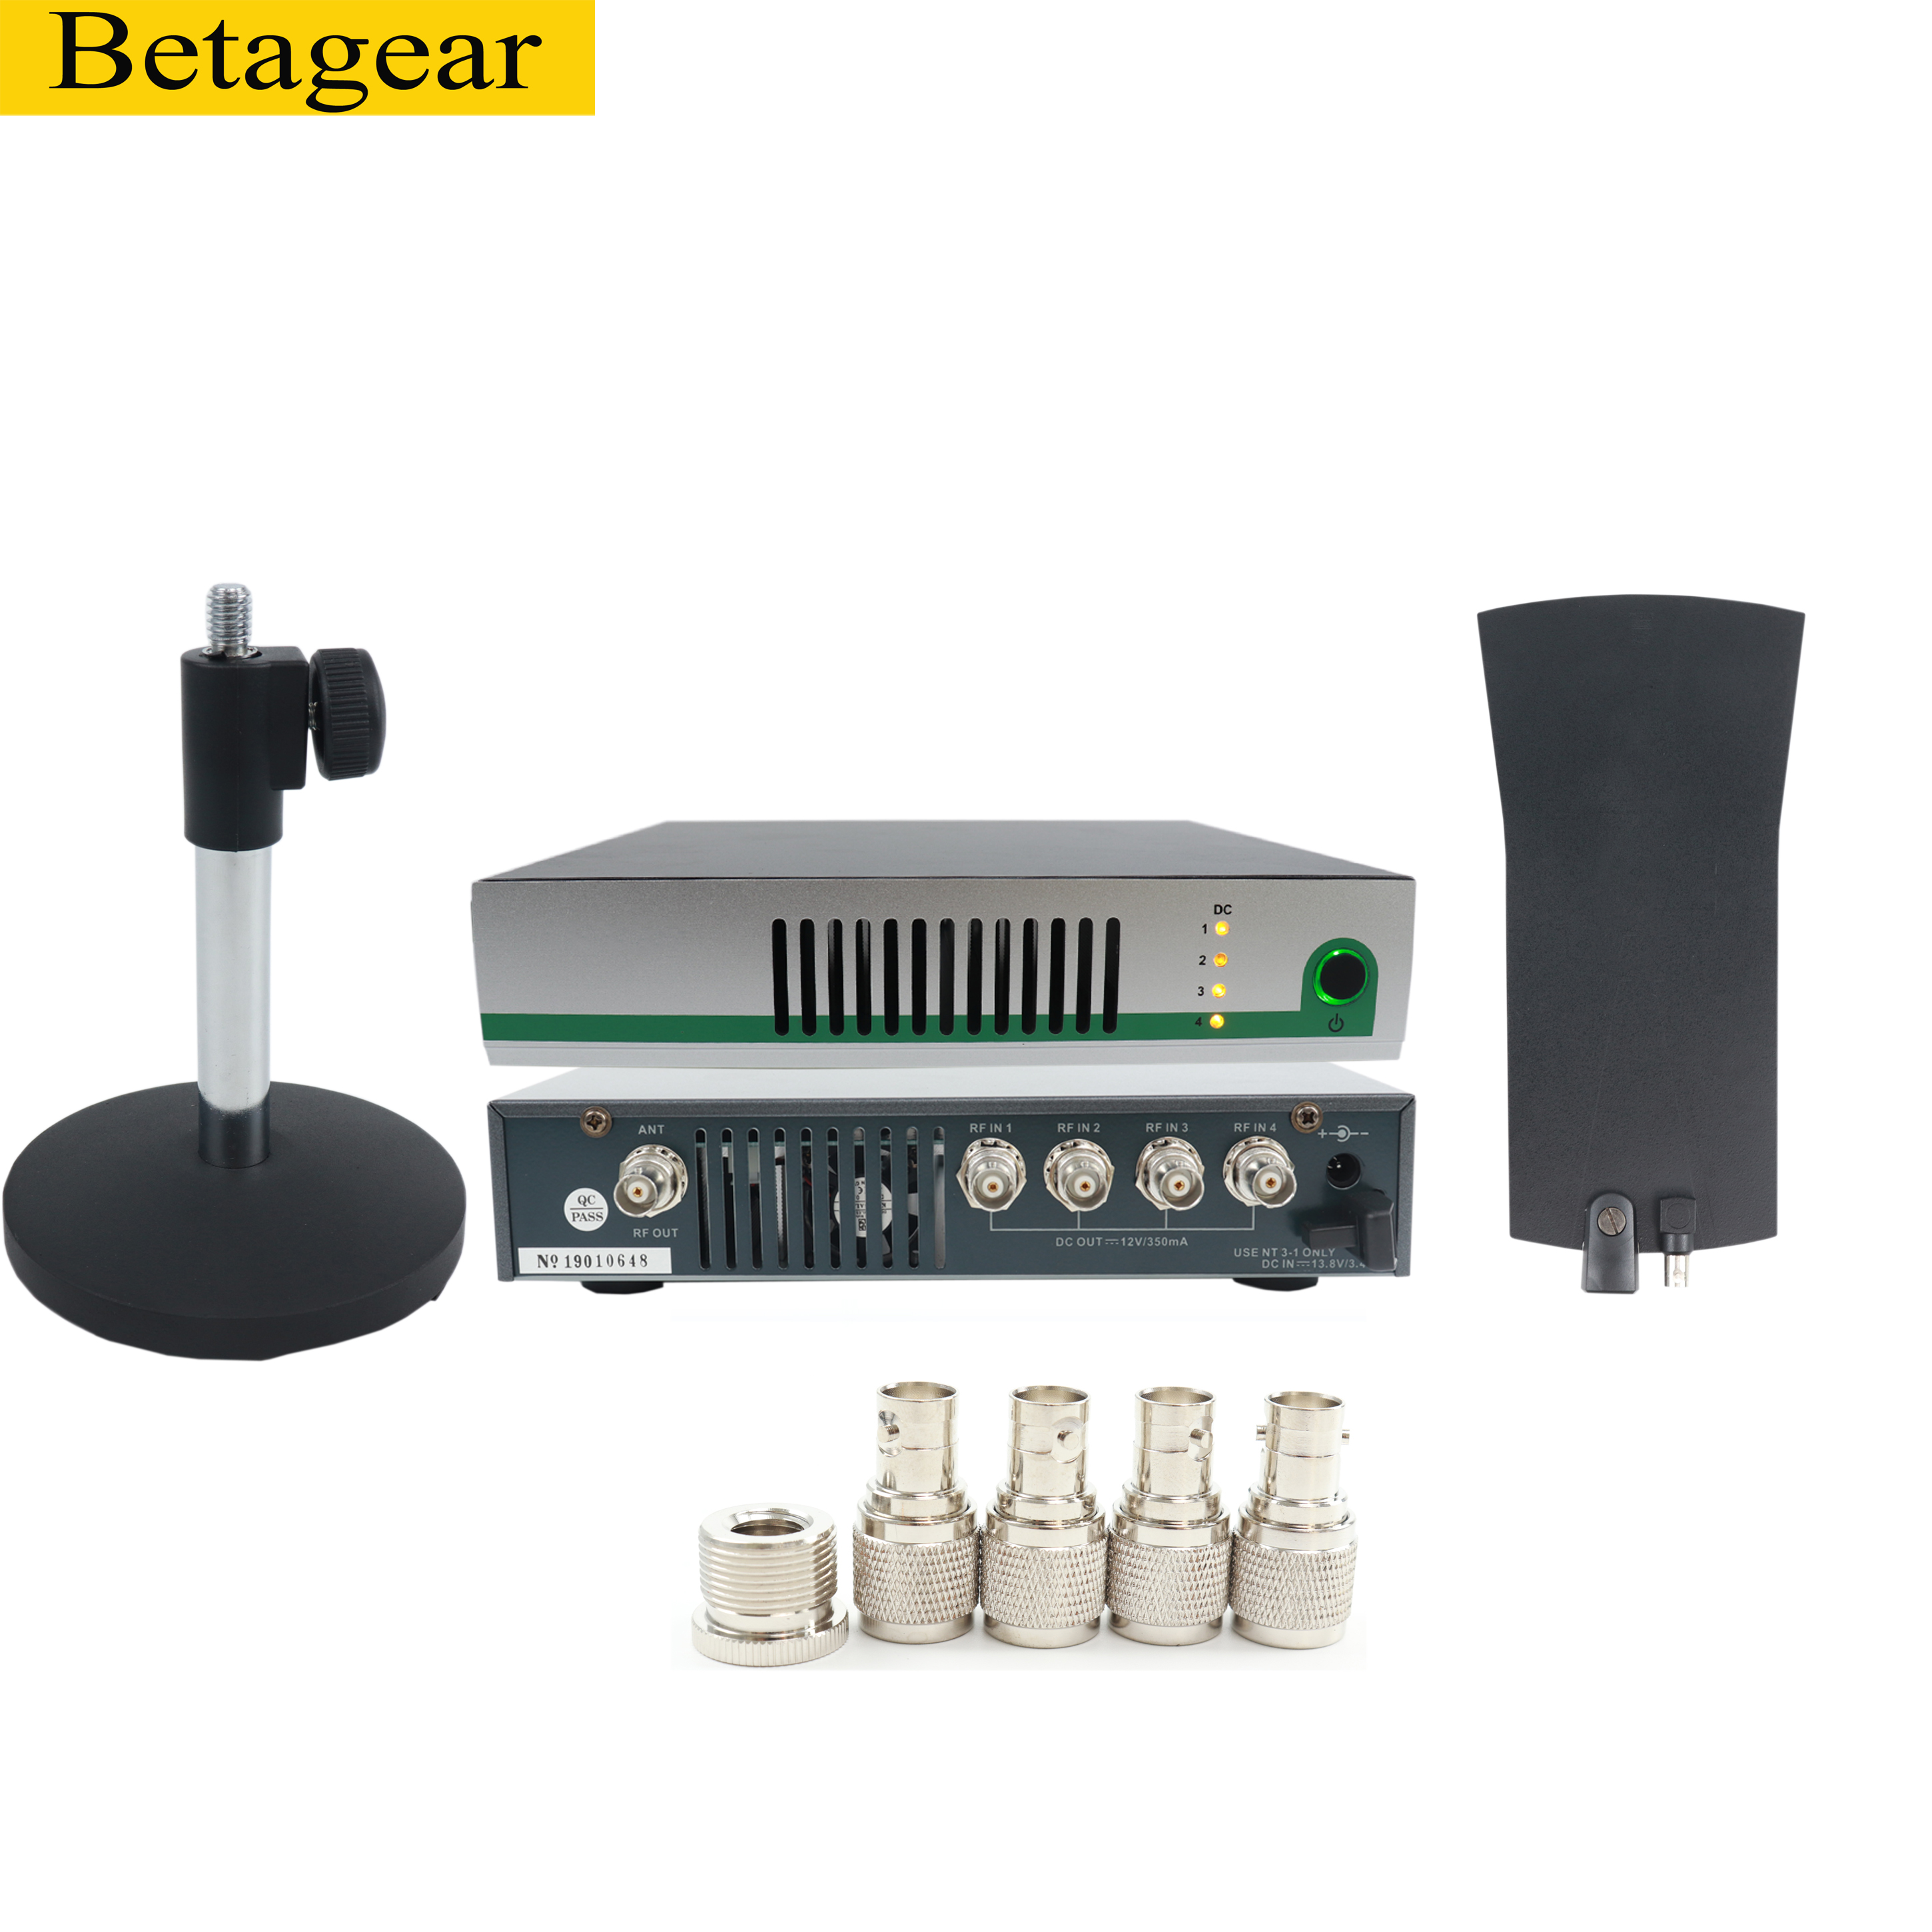 Betagear AC4 UHF Wireless System Antenna Power Distribution Amp+Active Transmitter Combiner For In Ear Monitor SR2050 IEM